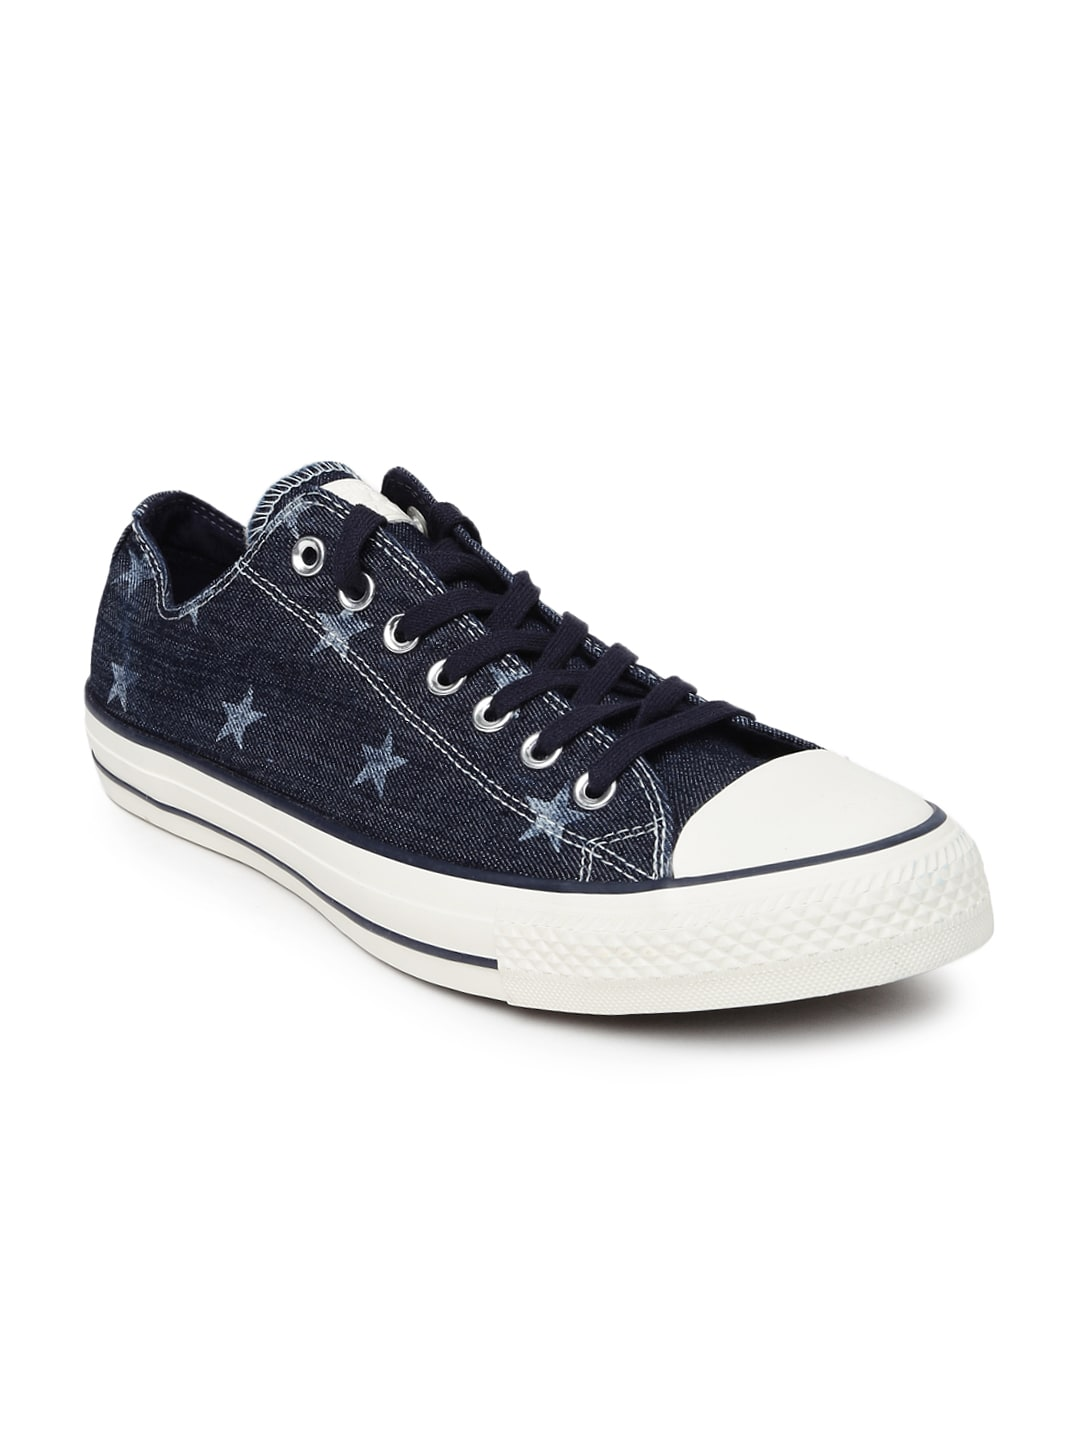 converse shoes black and blue. converse shoes black and blue c